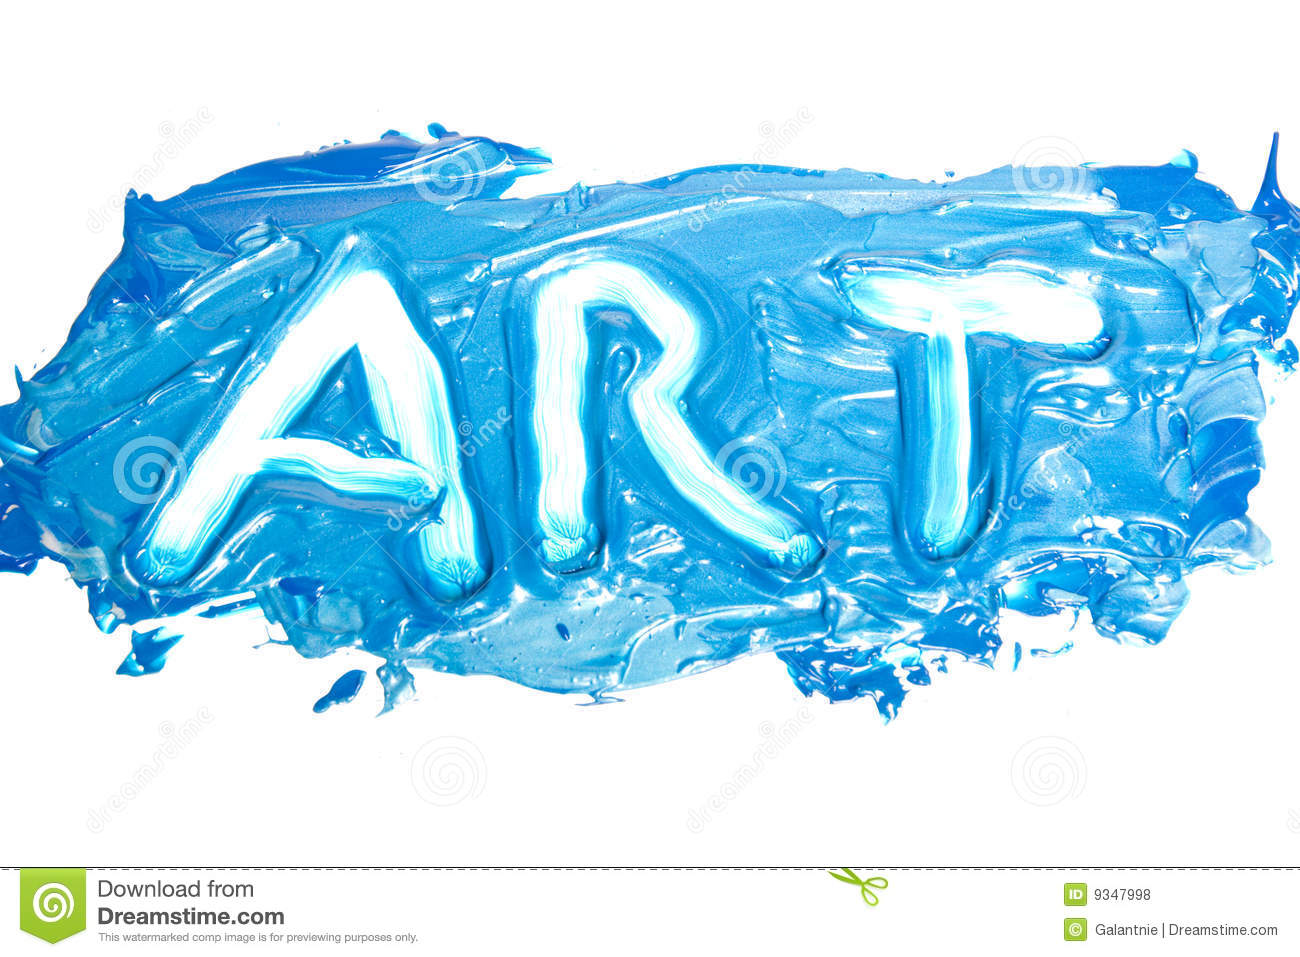 Word - ART stock photo. Image of color, painter, artist ...